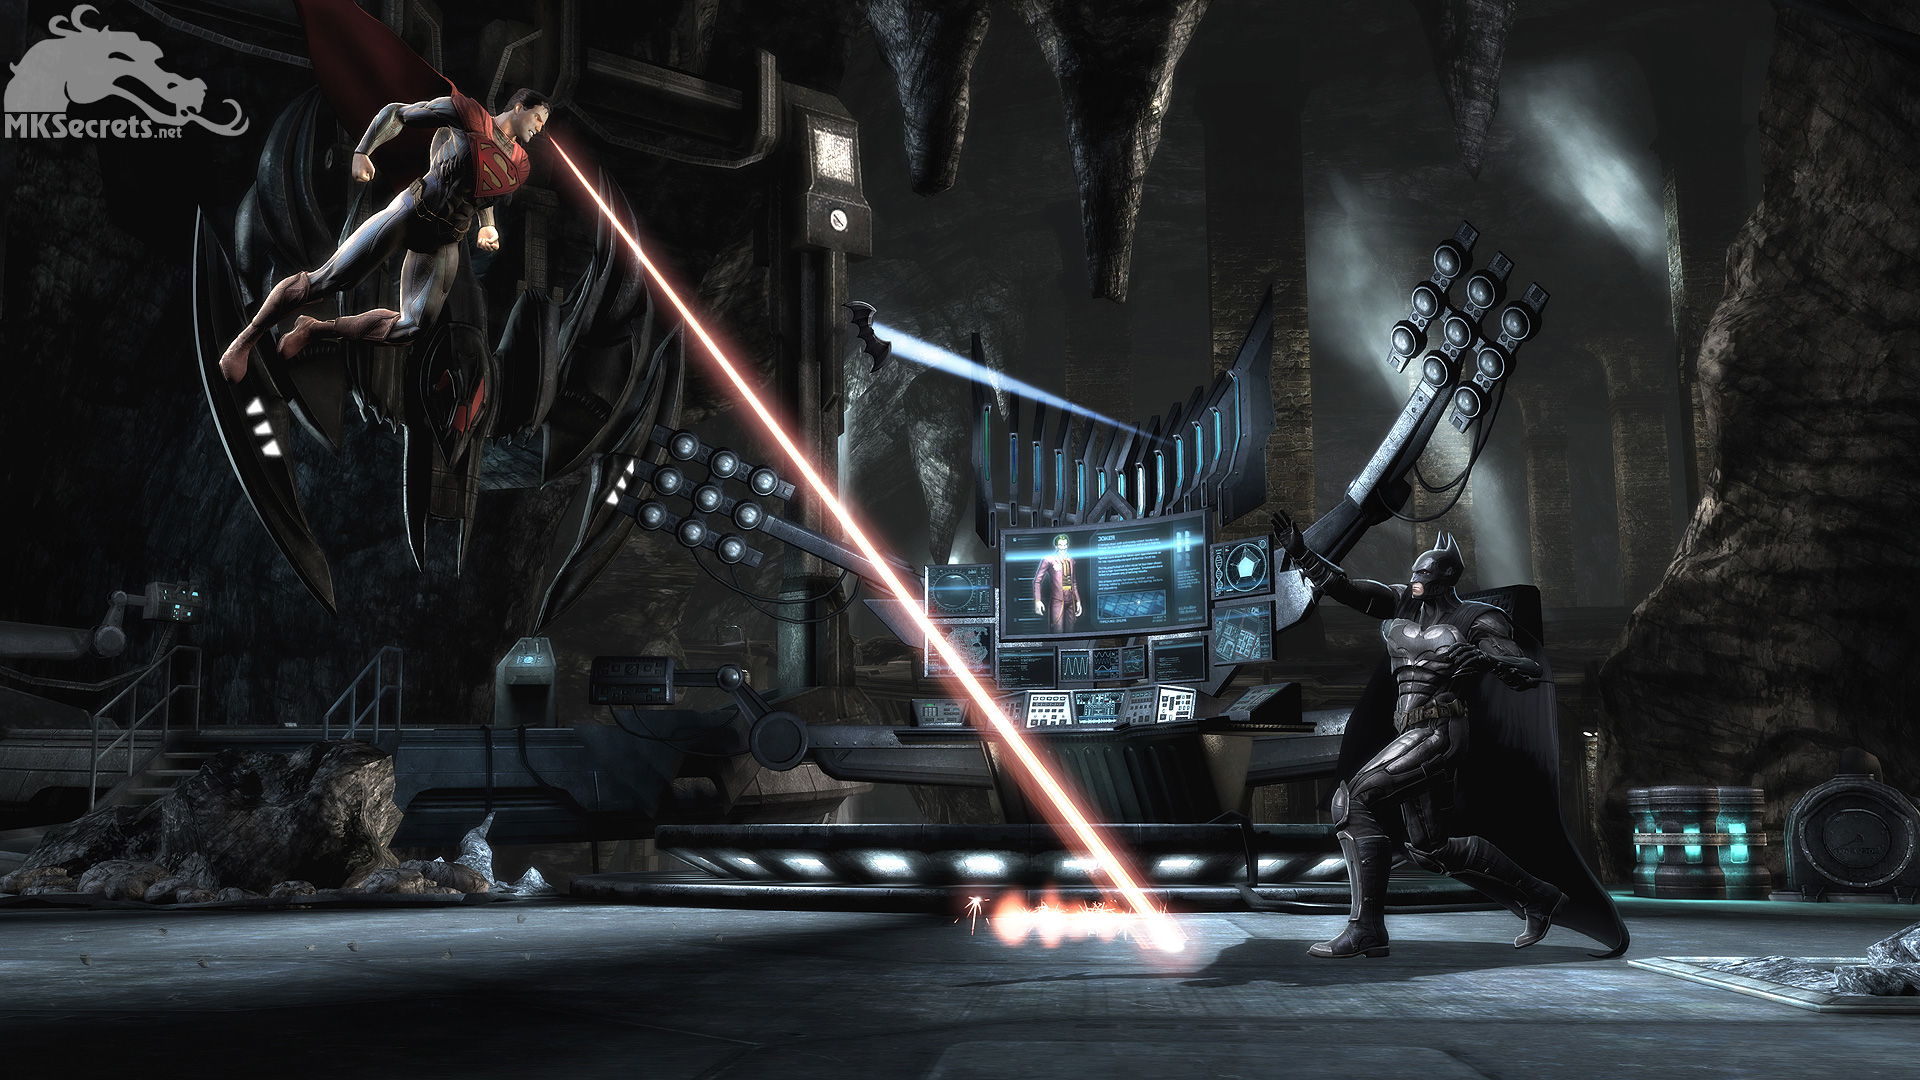 [Oficial] Injustice: Gods Among Us Injustice-gods-among-us-screenshot-020